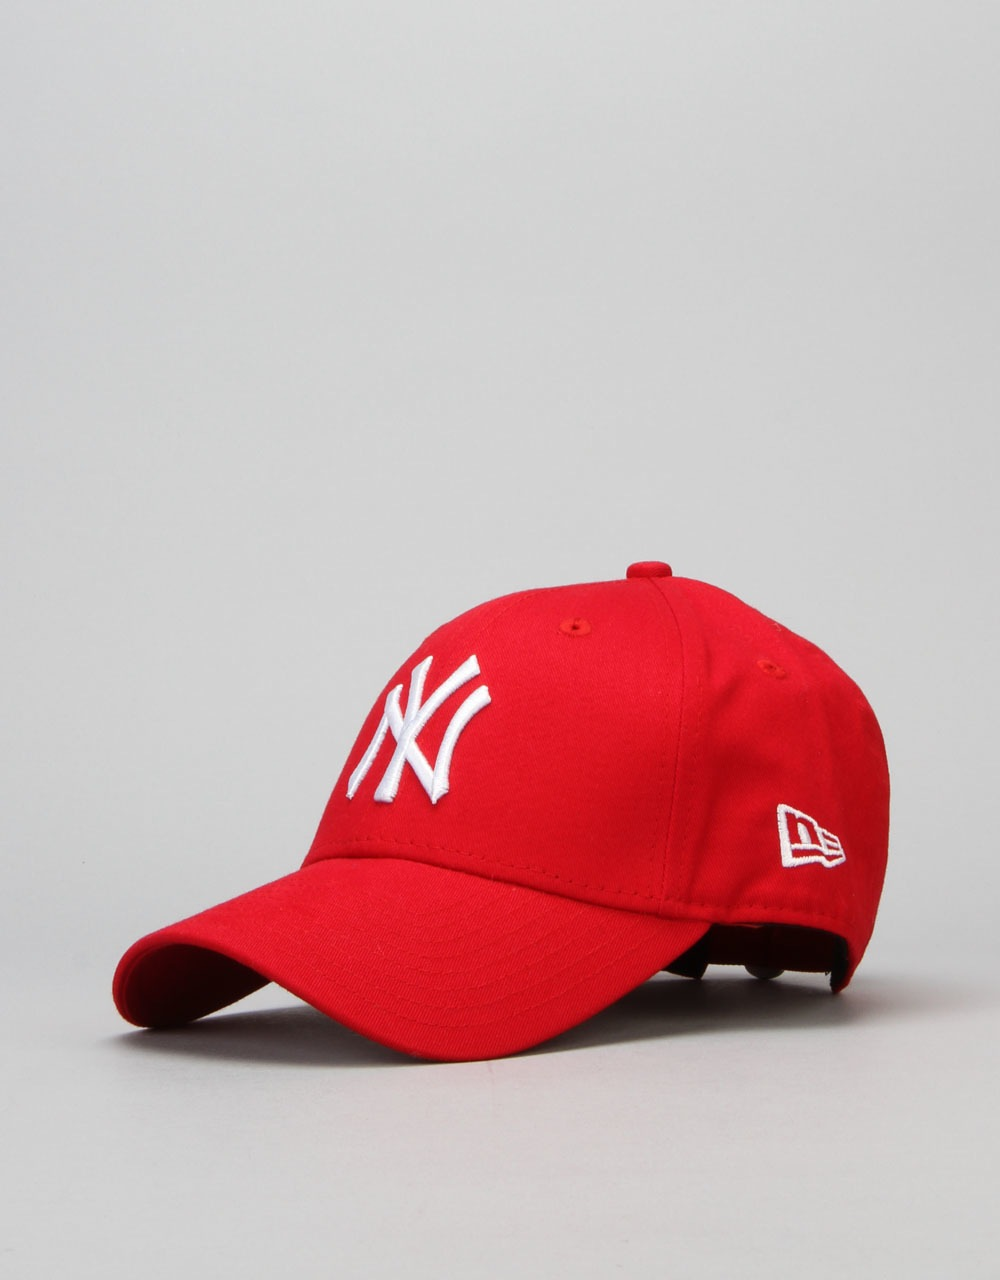 New Era 9Forty MLB New York Yankees Cap - Scarlet White  0a744c3ed72